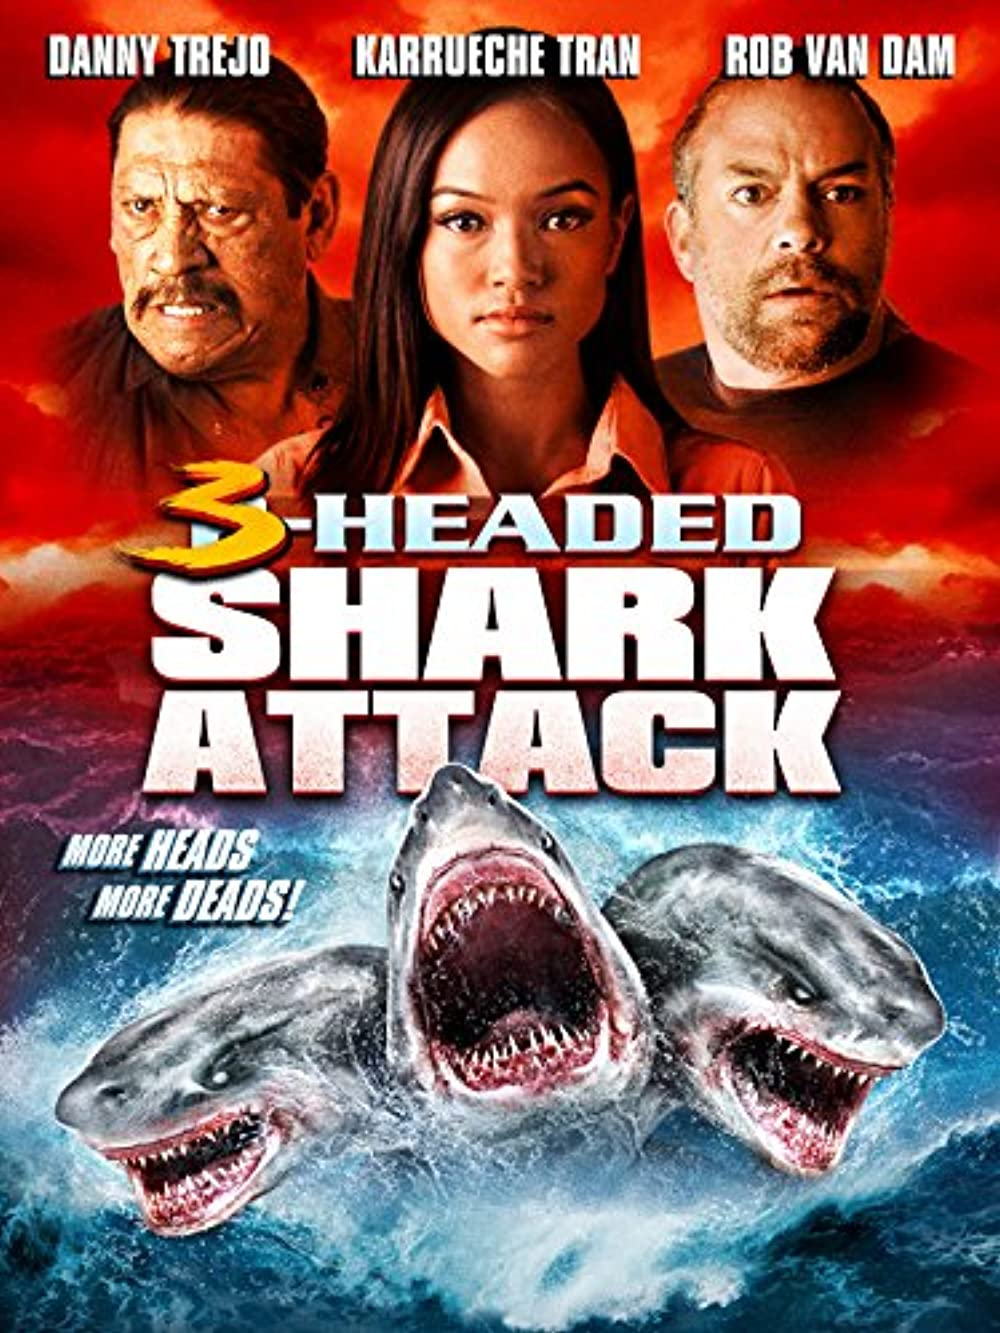 3 Headed Shark Attack 2015 Hindi Dual Audio 1080p BluRay 1.4GB Download